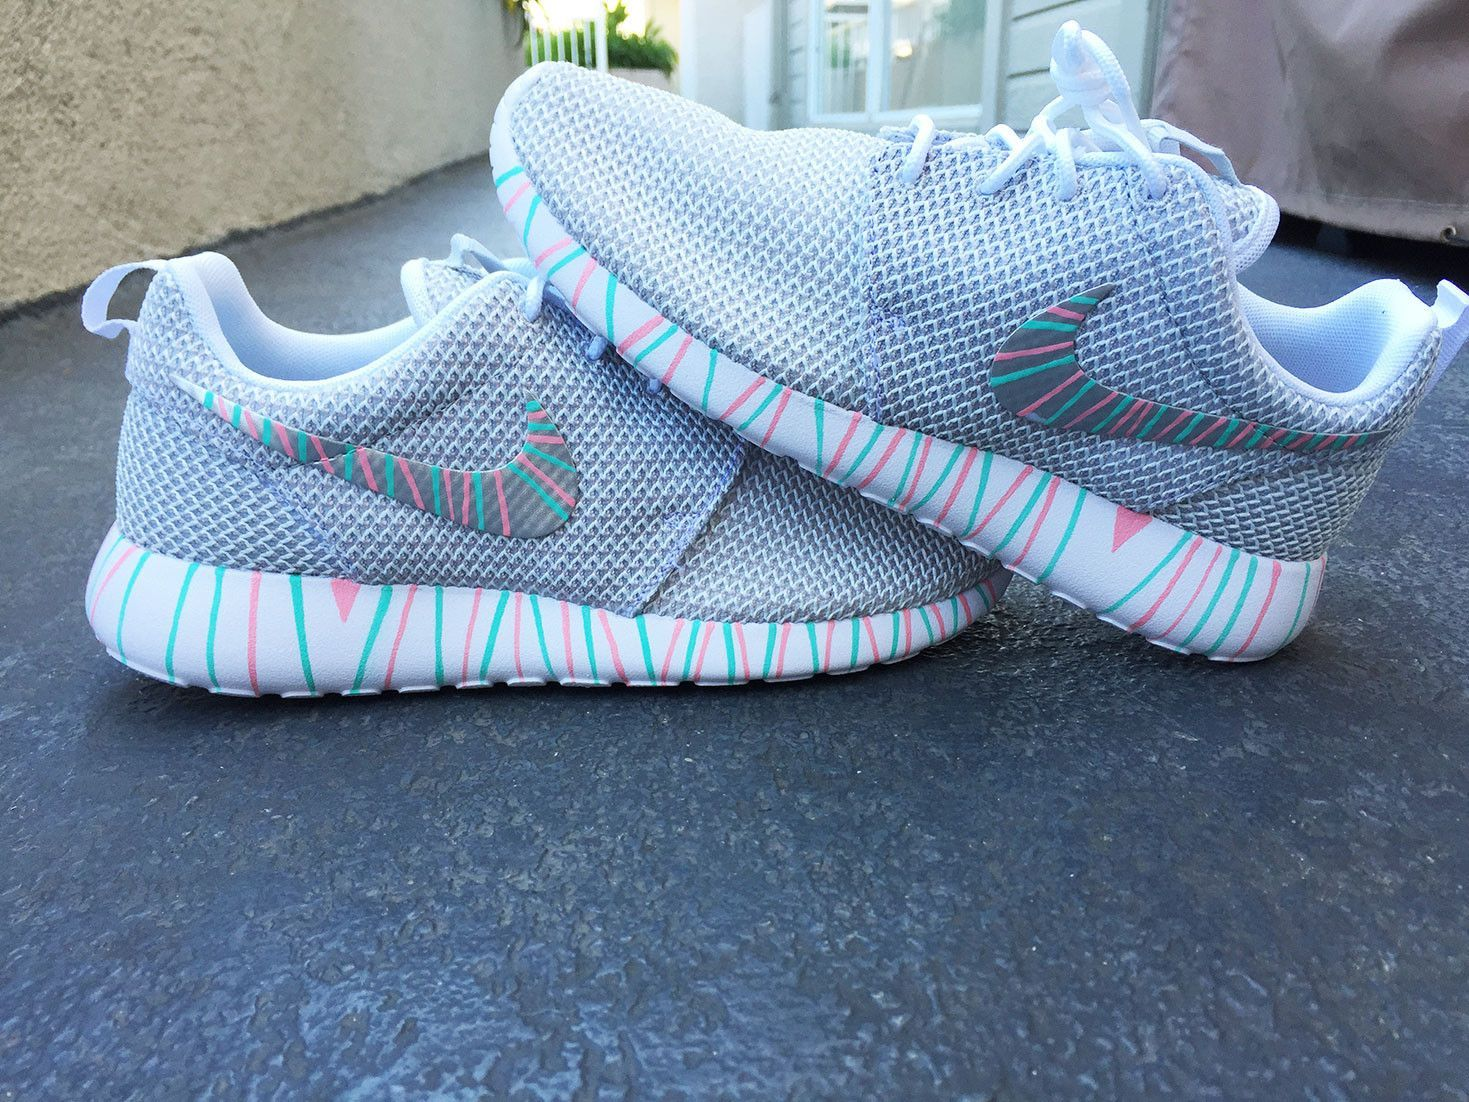 new arrival 0cd9a 4d15d Womens Custom Nike Roshe Run sneakers, South Beach teal, Pink petals, Customized  sneakers, Fashionable design, trendy and cute, platinum